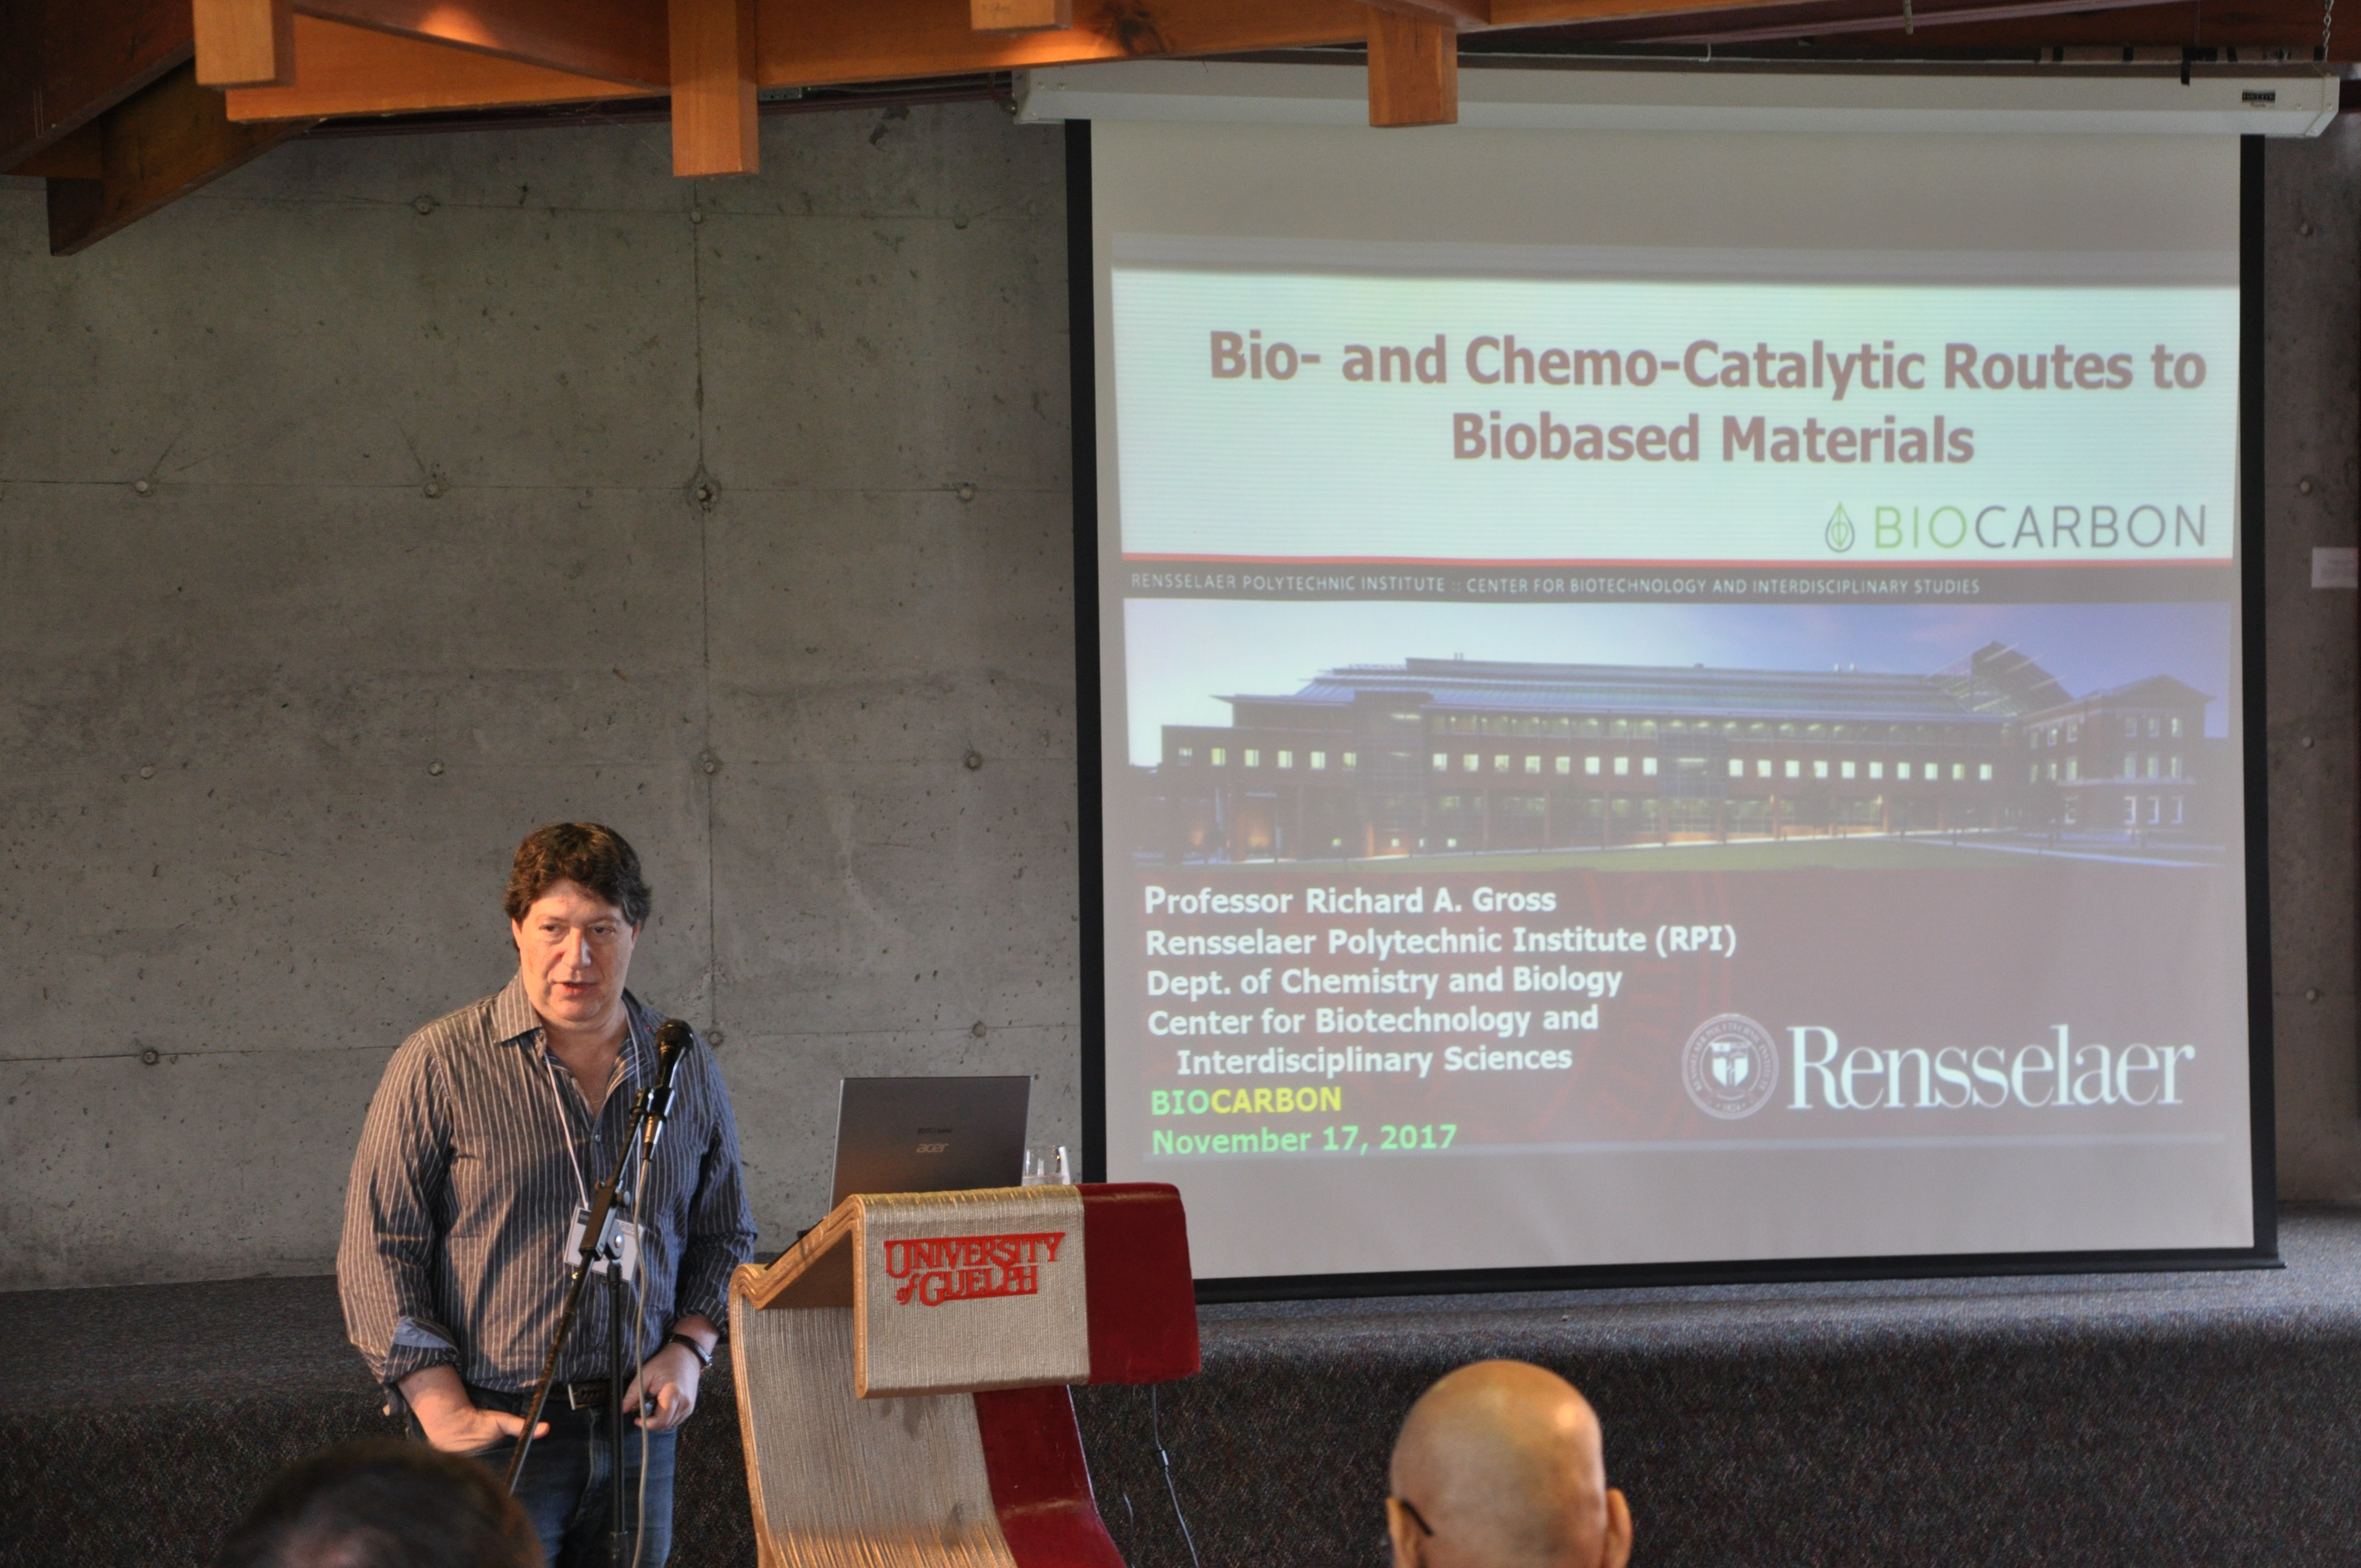 Biocarbon Research Meeting - Prof. Richard Gross Presentation